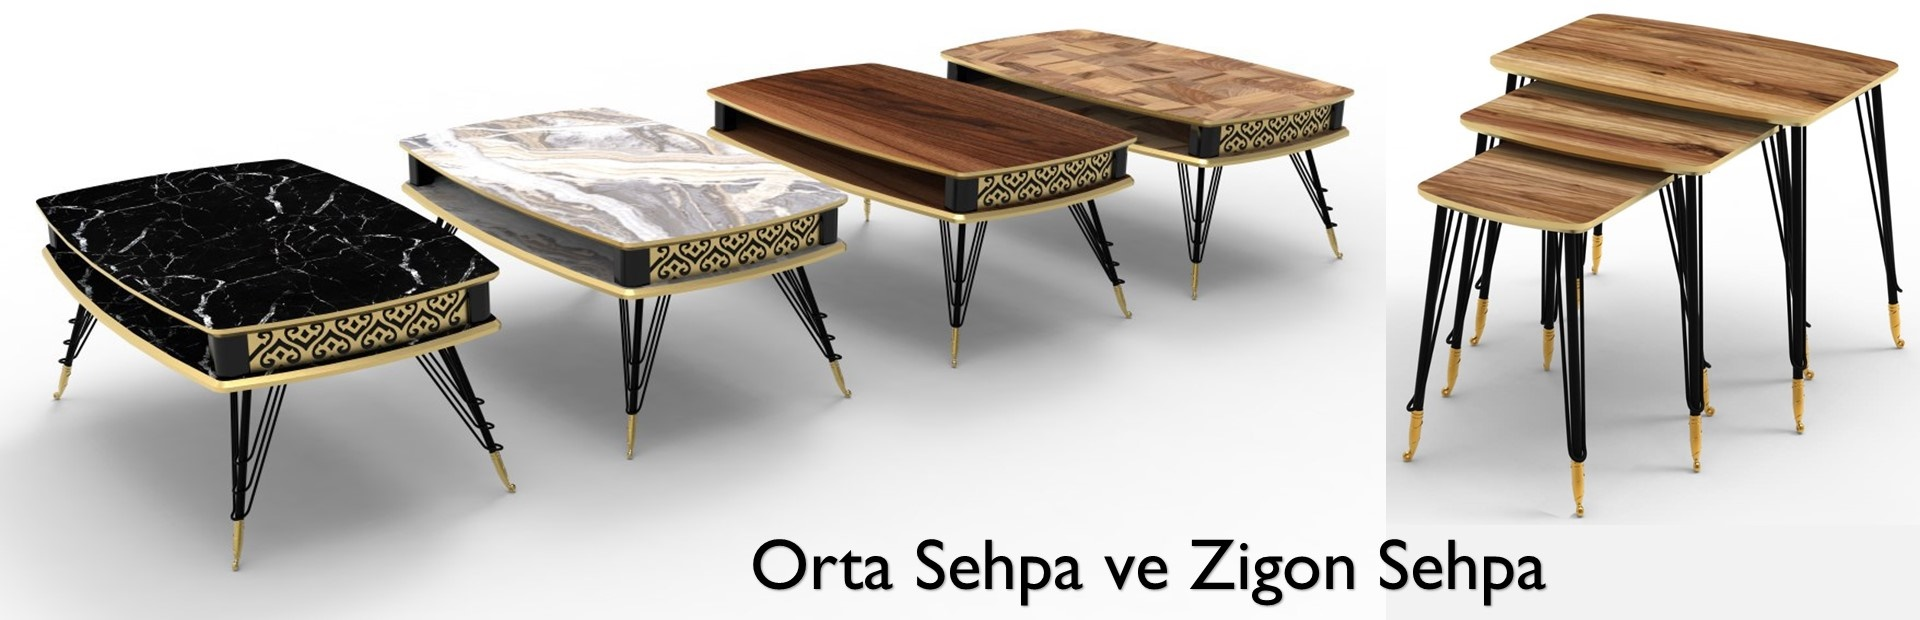 Coffee Tables & Tea Table sets